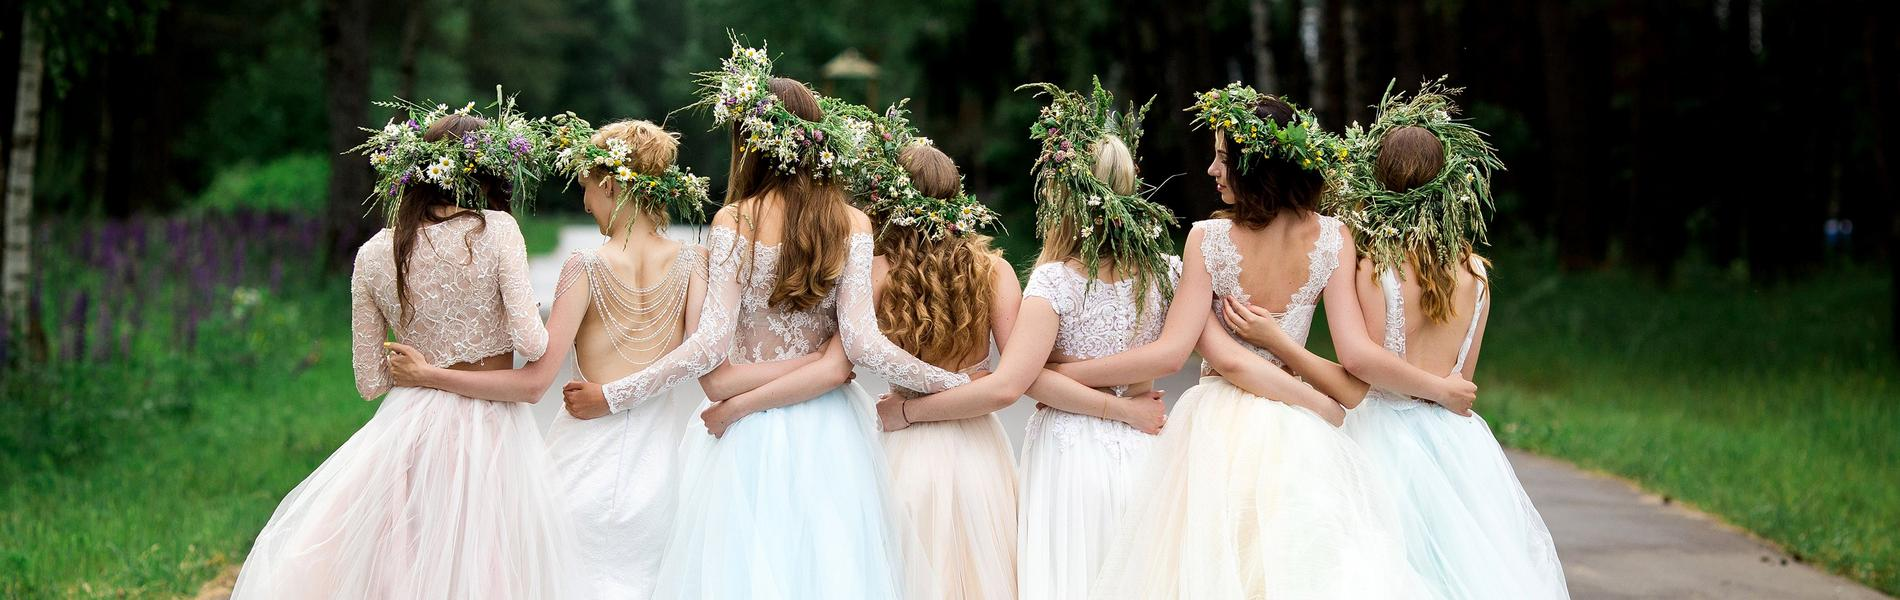 How to Beautifully Accessorise Your Wedding Gown. Group of bride and her bridesmaids locking arms